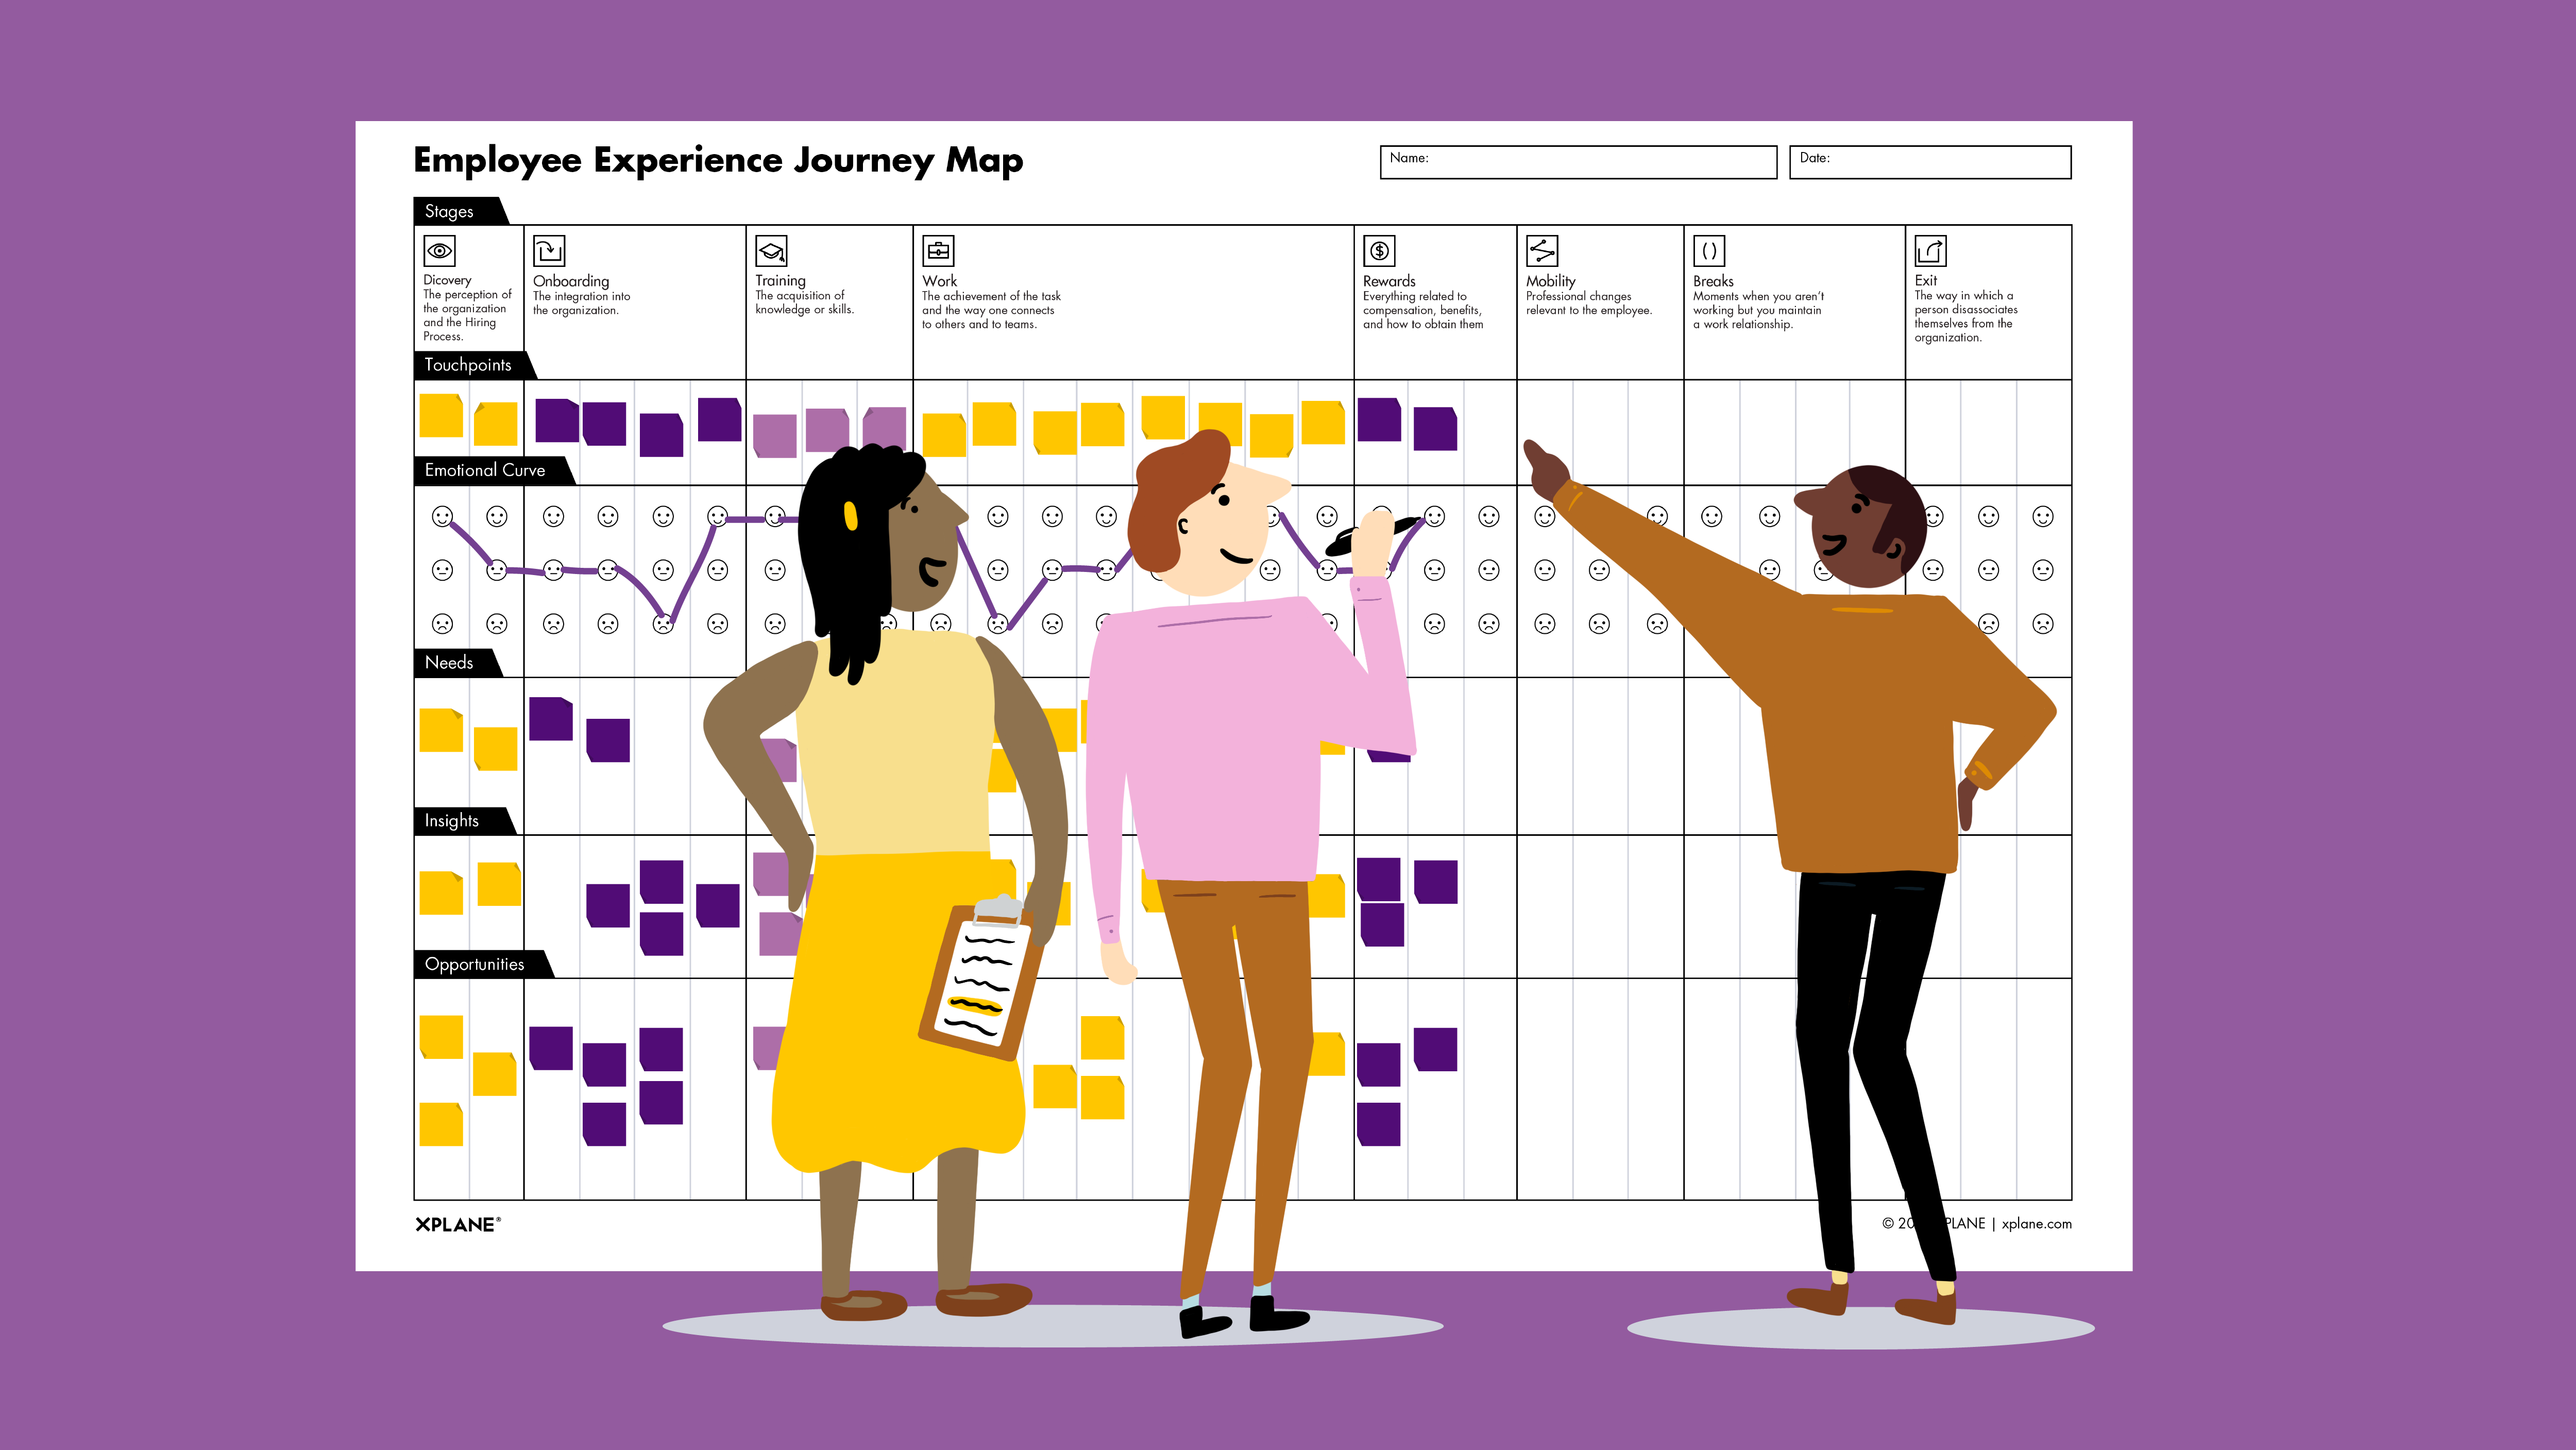 Three co-workers working on XPLANE's Employee Experience Journey Mapping worksheet. They are identifying an individual's experience at their company—plotting the employee's various touchpoints, their emotional state during each touchpoint. The expectation, using this tool will help organizations identify areas for improvement throughout an employee's tenure at an organization.